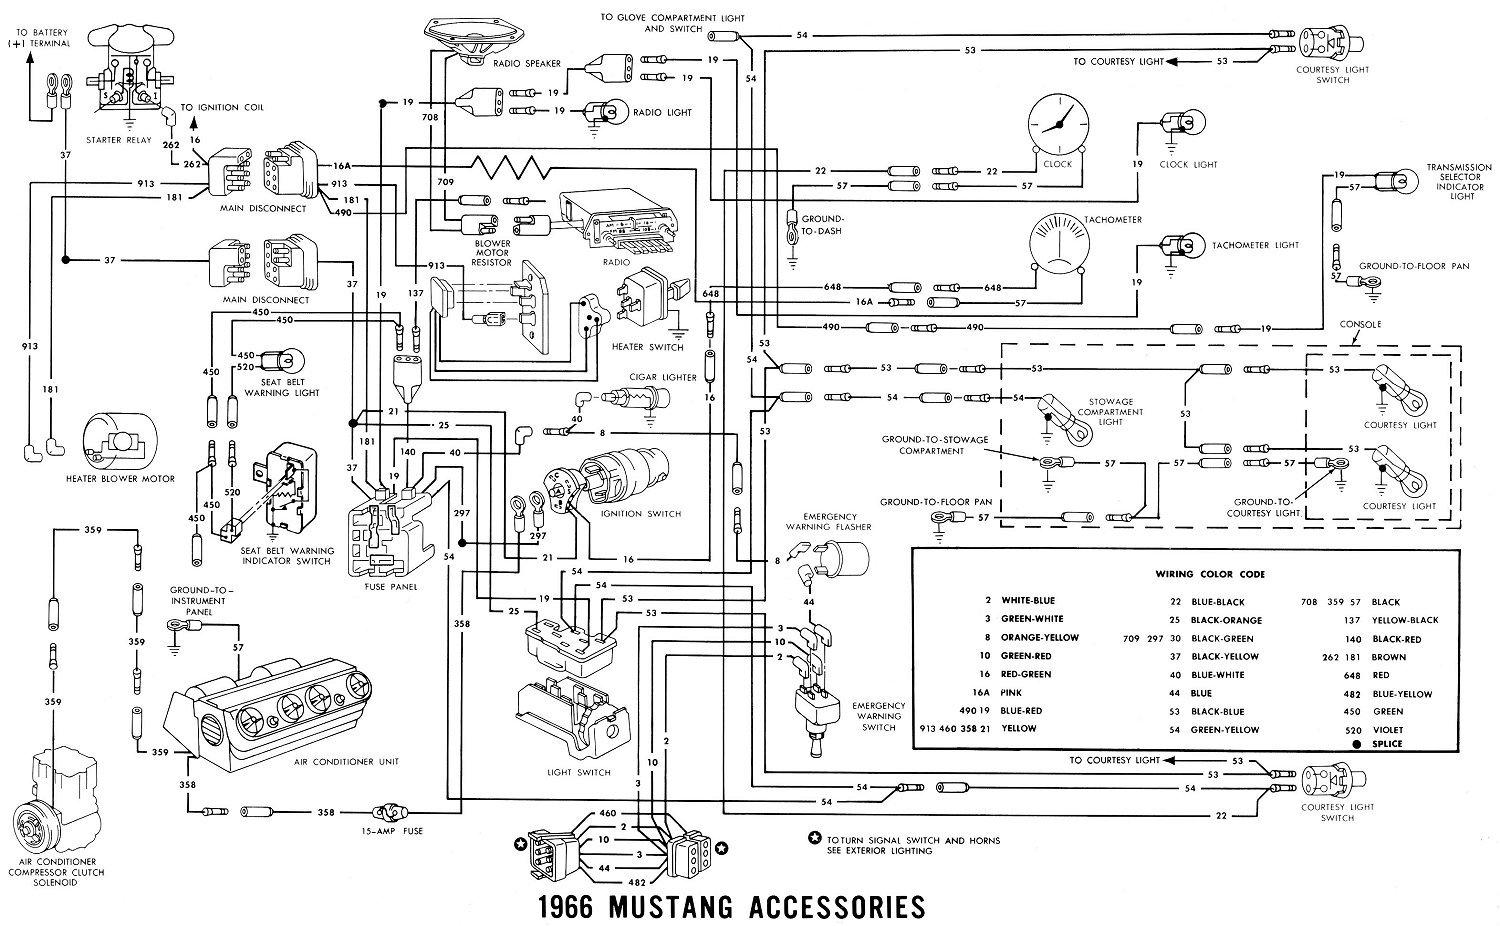 Fender Stratocaster Hss Wiring Diagram in addition Carburetor Fuel Pump Rev Limiter Fuel Controls in addition Thermostat Diagrams as well Thermostat signals and wiring also Fabulous Coil Wiring Diagram Ideas Medium Size Of Wiring Diagram Dodge Charger Wiring Diagram Fabulous Photo Ideas C 6 Wiring A Light Switch. on furnace power switch